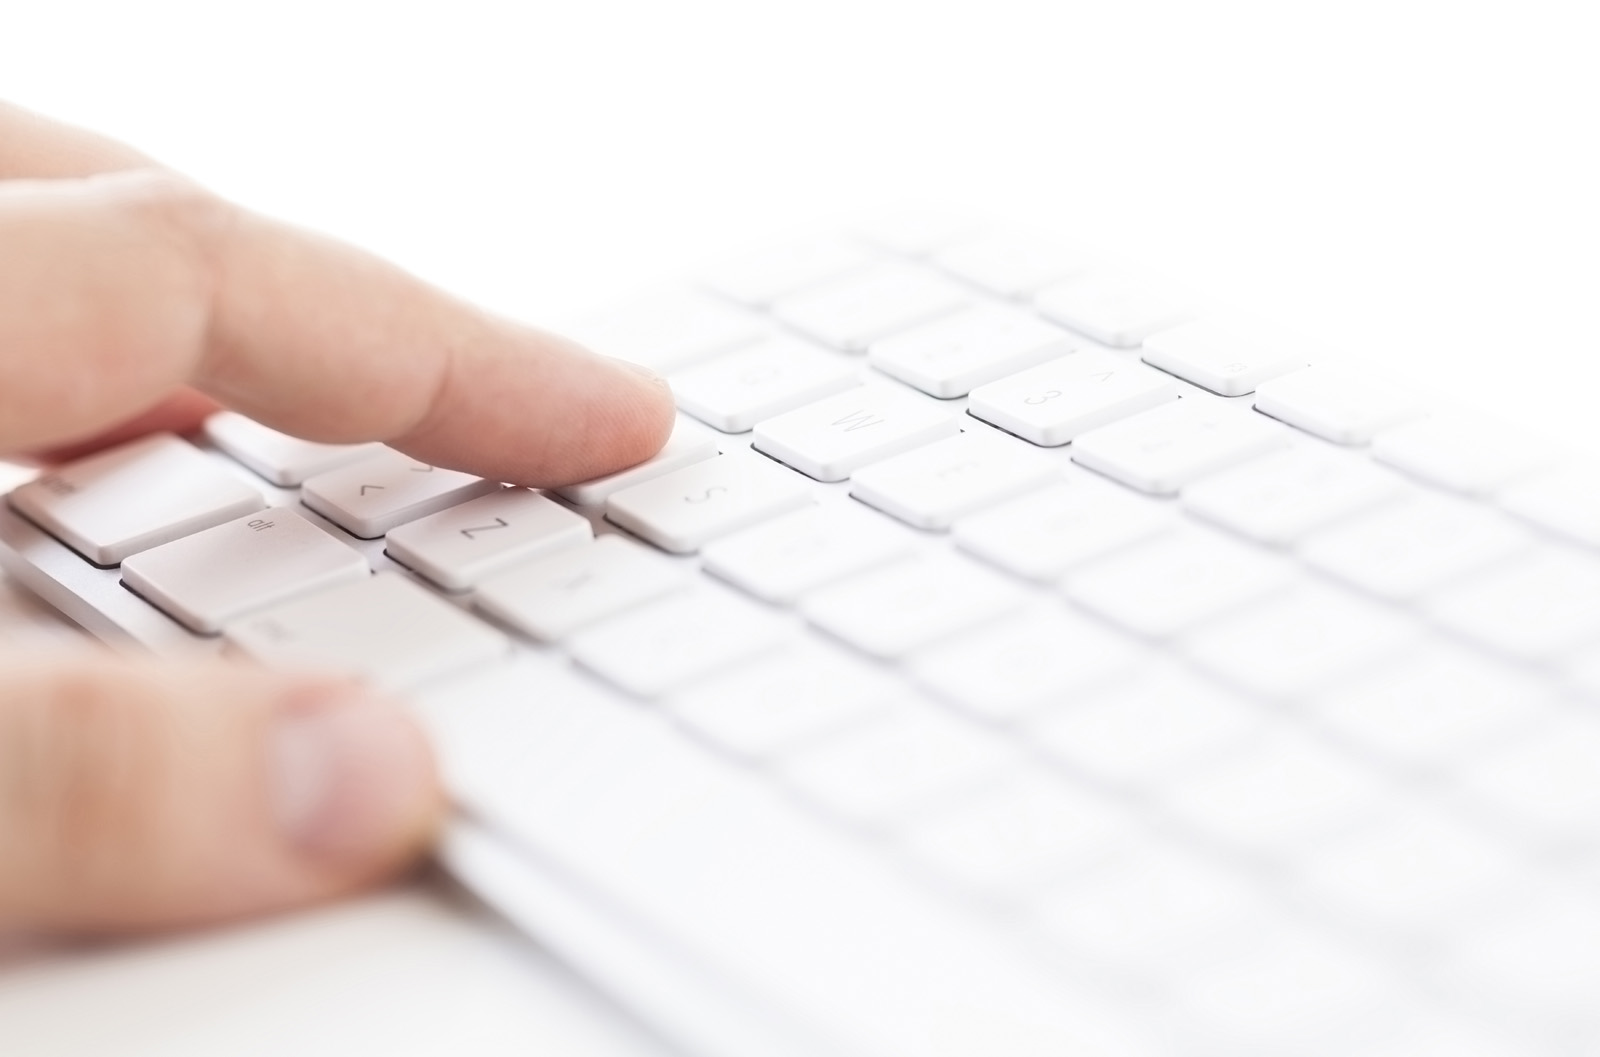 Typing on the keyboard 51522